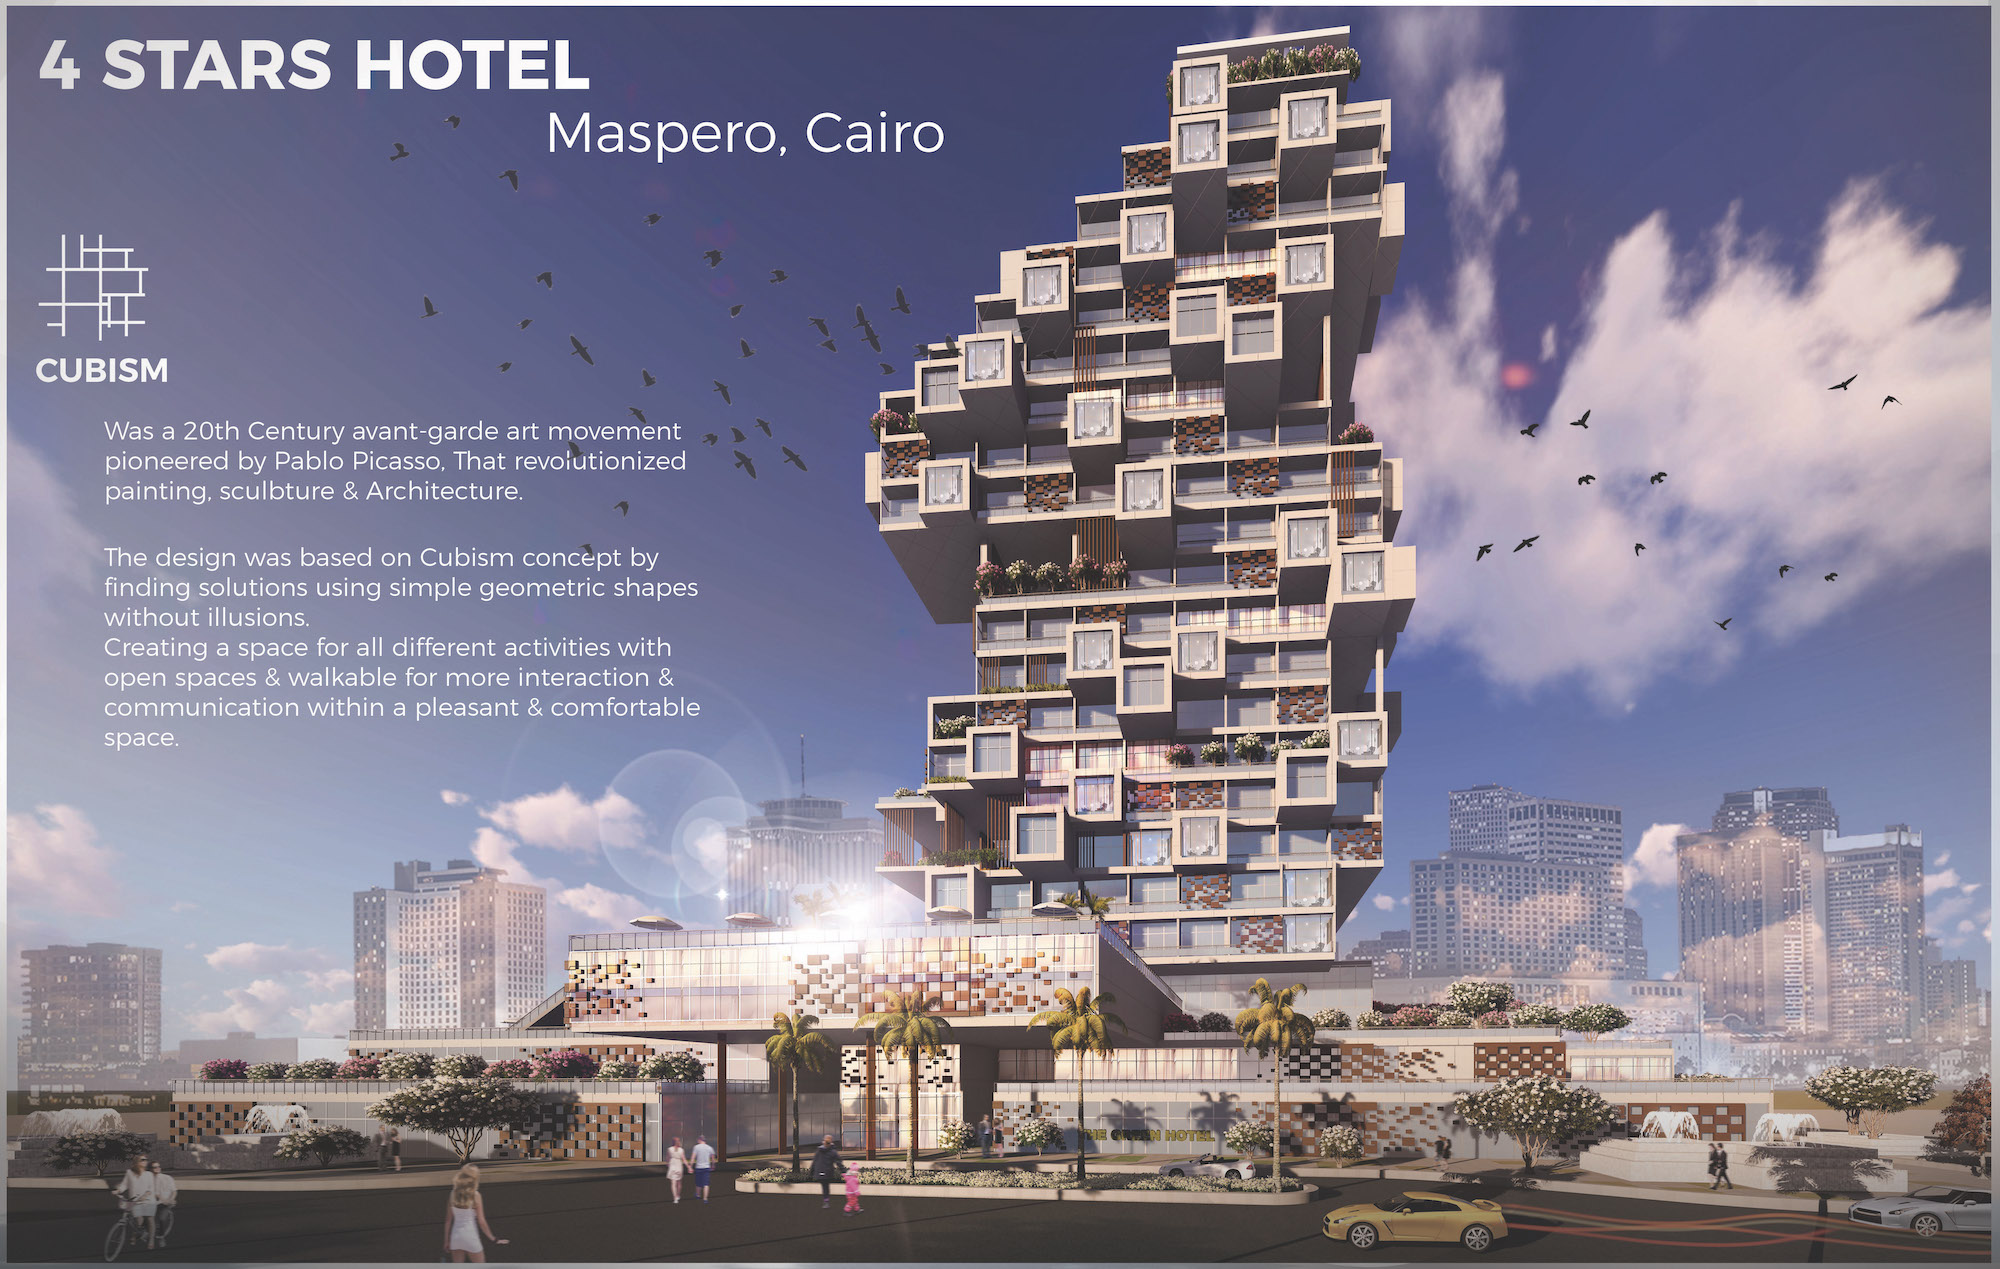 sustainable hotel in Cairo